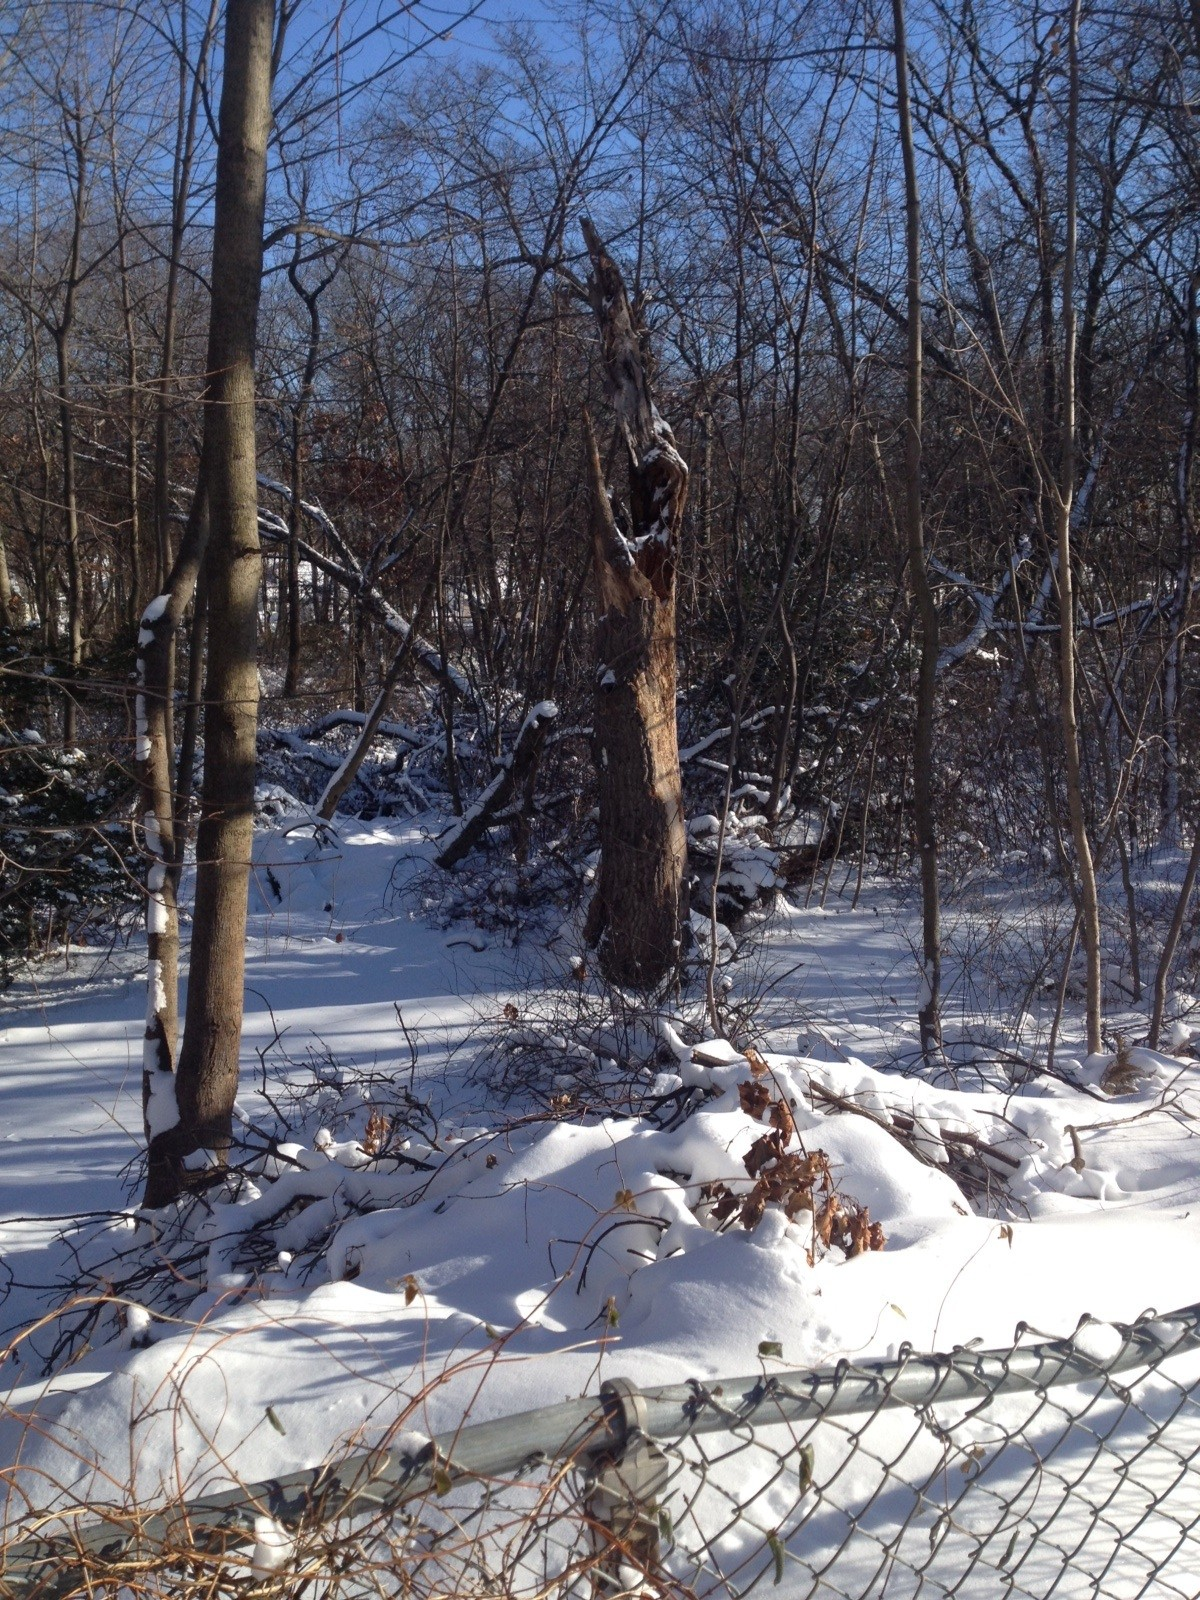 Snow blanketed the Tackapausha Nature Preserve.